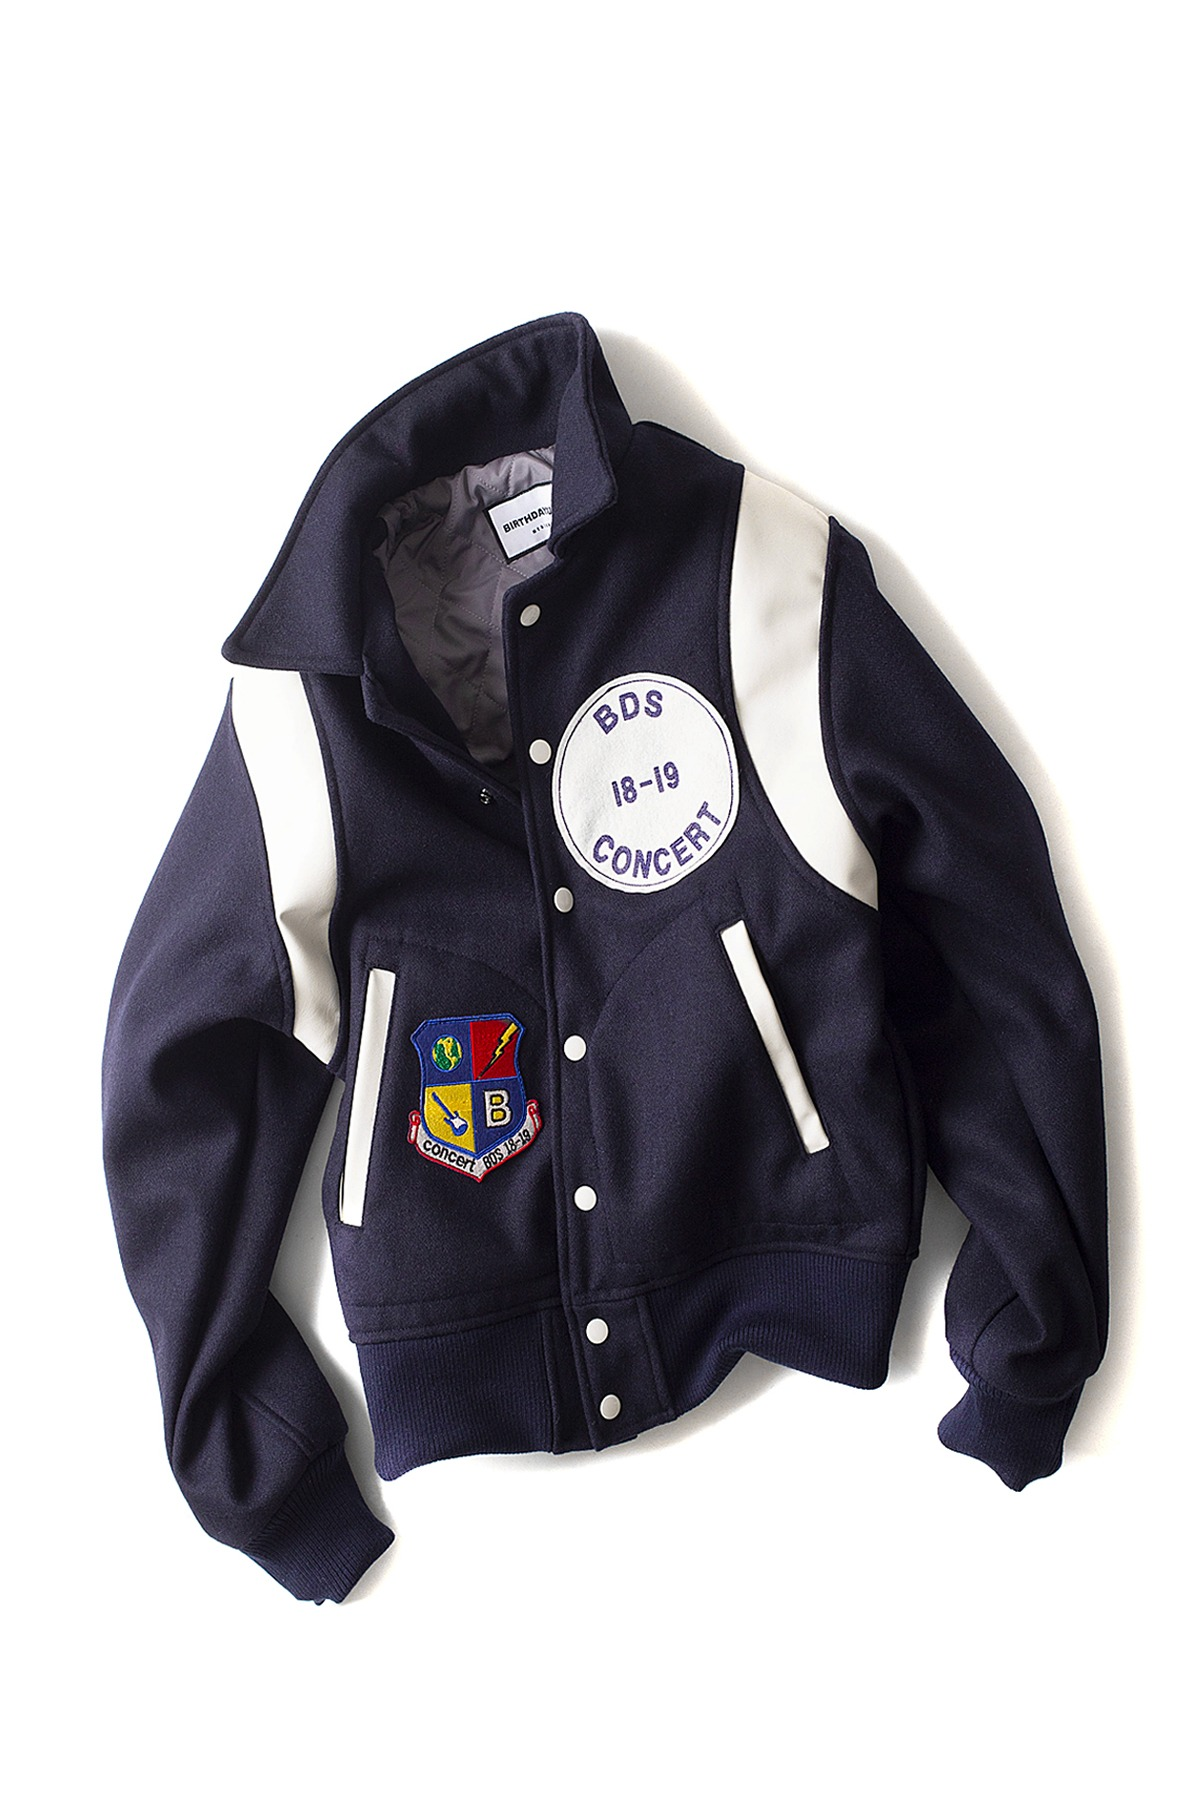 BIRTHDAYSUIT : Stadium Jacket (Navy)